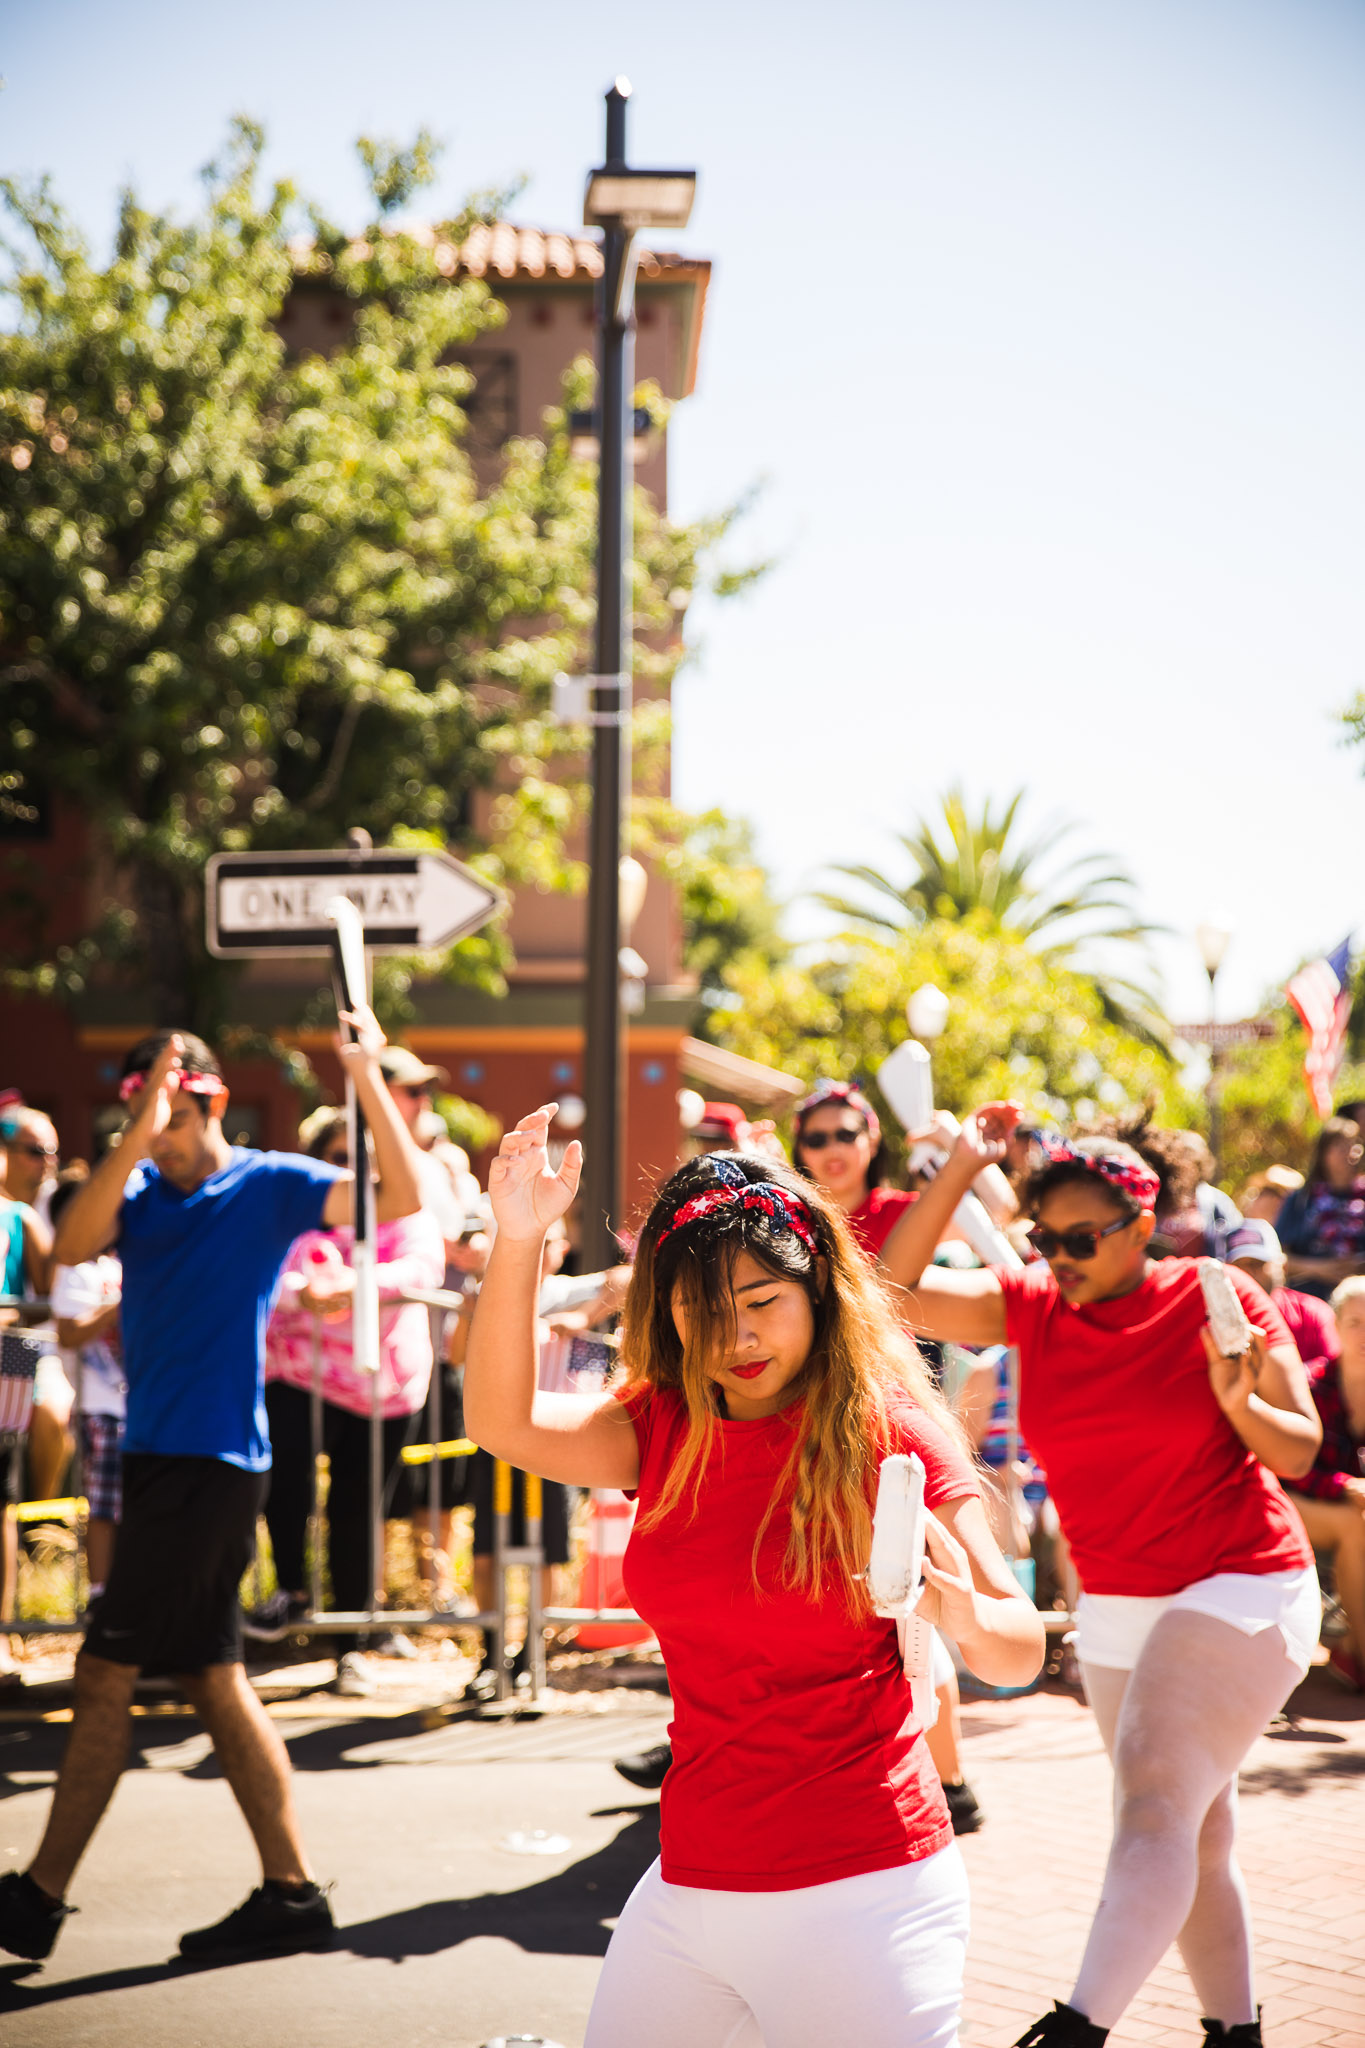 Archer_Inspired_Photography_Morgan_Hill_California_4th_of_july_parade-74.jpg